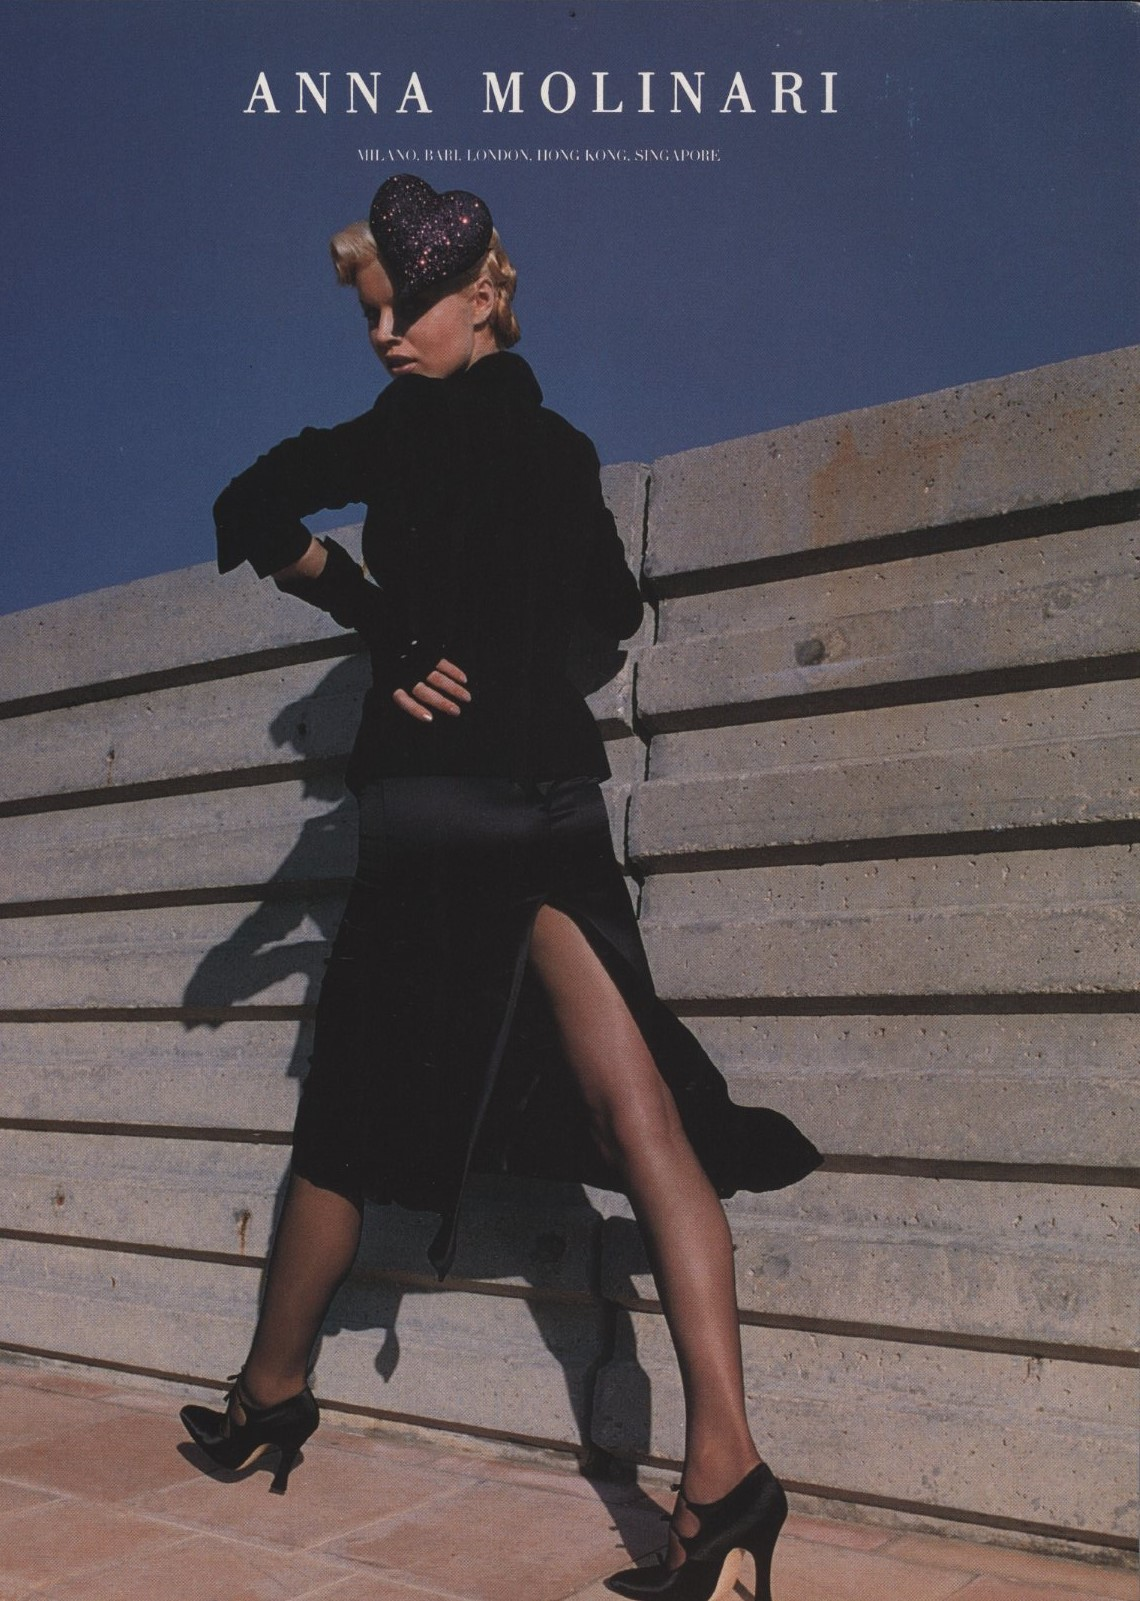 EVA HERZIGOVA ANNA MOLINARI AD FALL 1995 PHOTOGRAPHY HELMUT NEWTON VOGUE ITALIA N. 539 JULY 1995